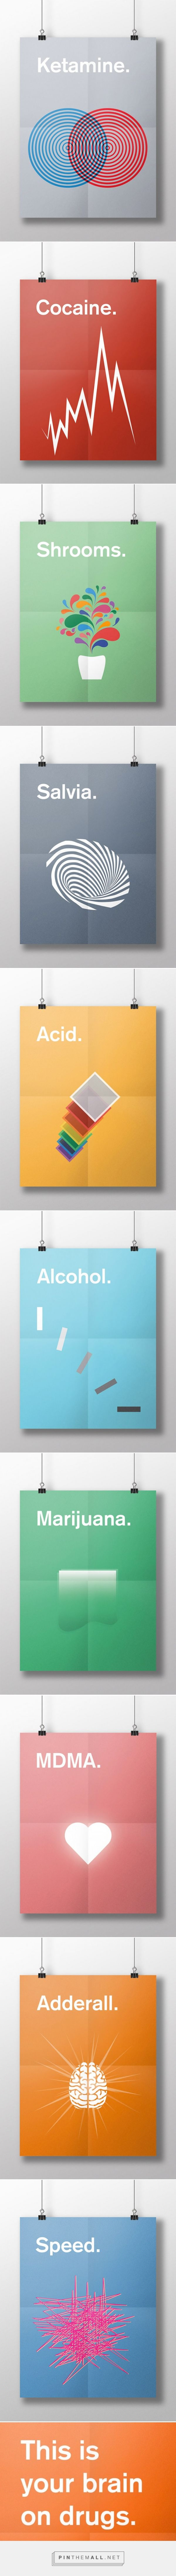 This is your brain on drugs: Posters by Meaghan Li